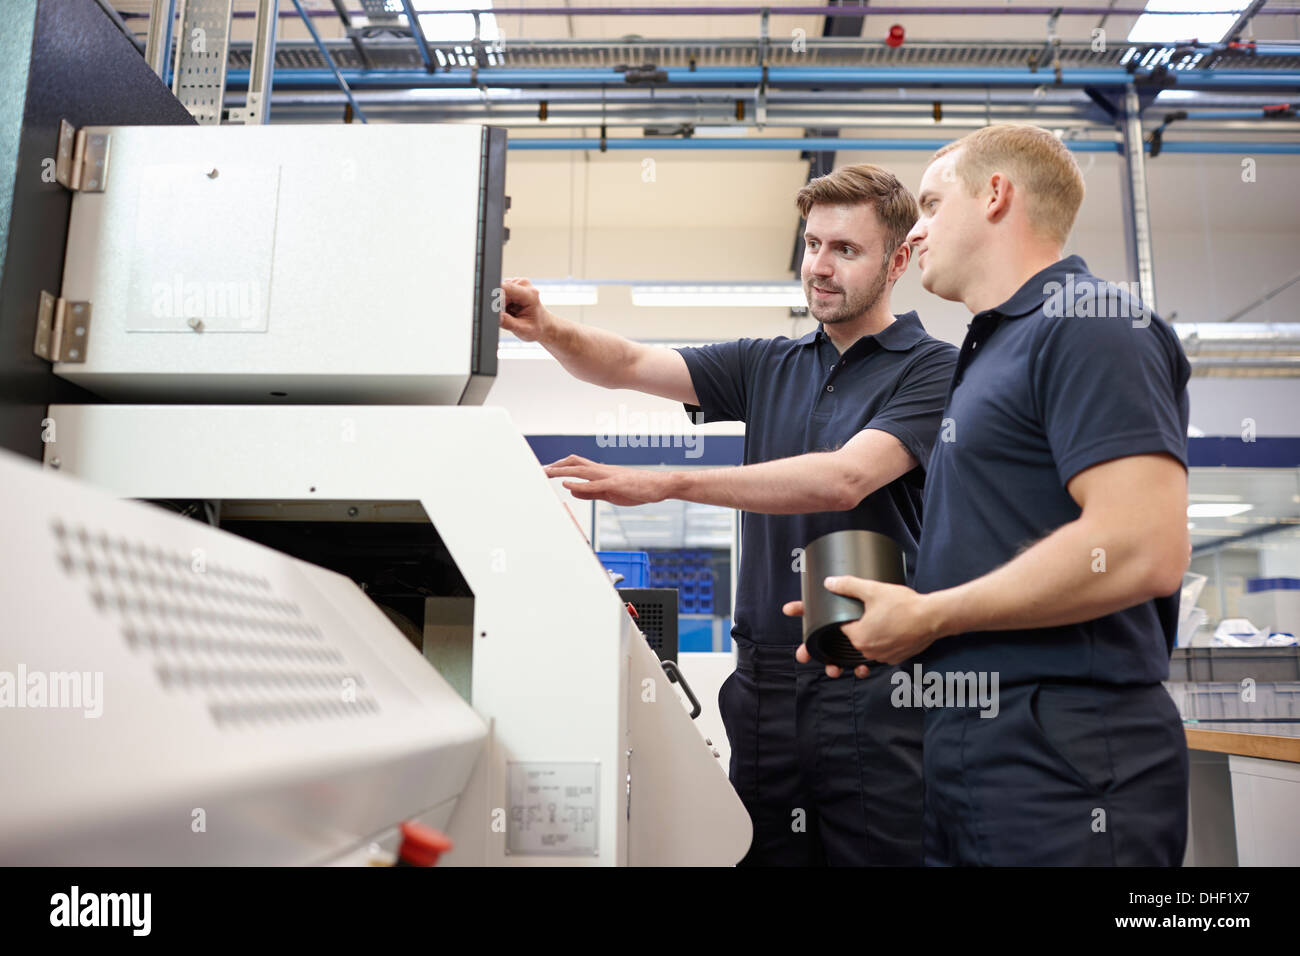 Workers checking looking at control panel in engineering factory - Stock Image